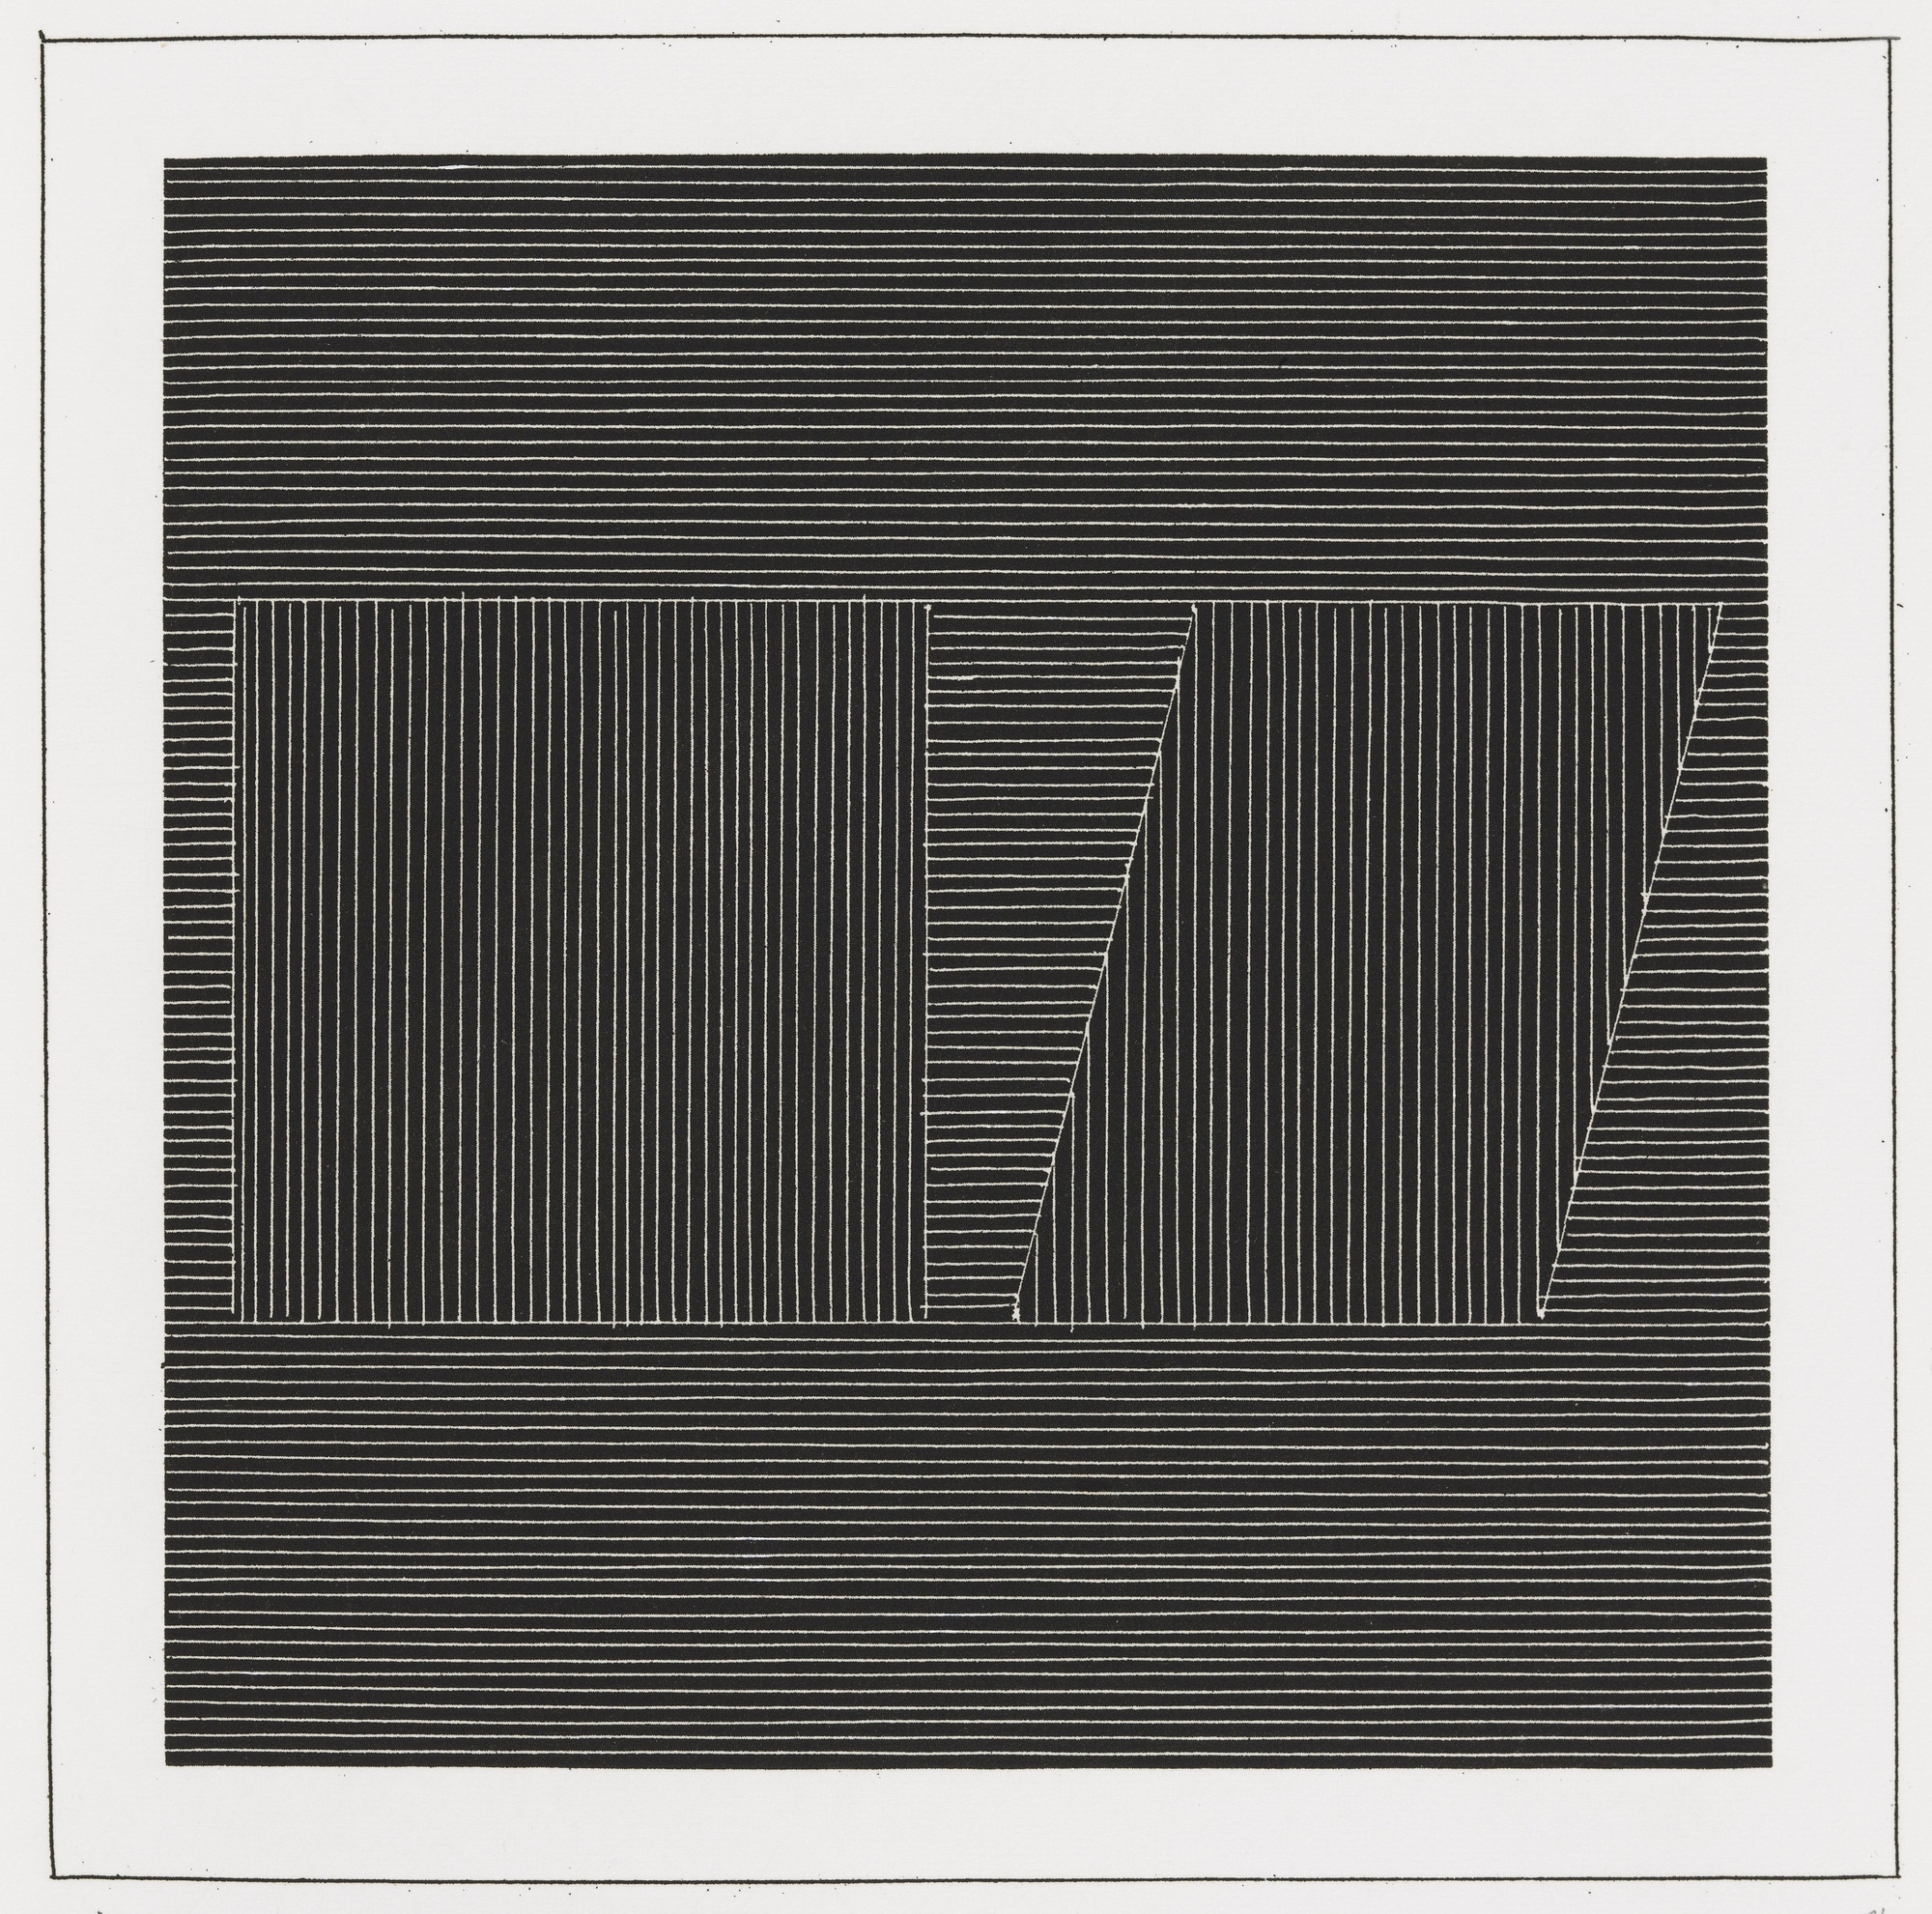 Sol LeWitt. Plate (folio 12) from Six Geometric Figures and All Their Combinations, Volume I. 1980